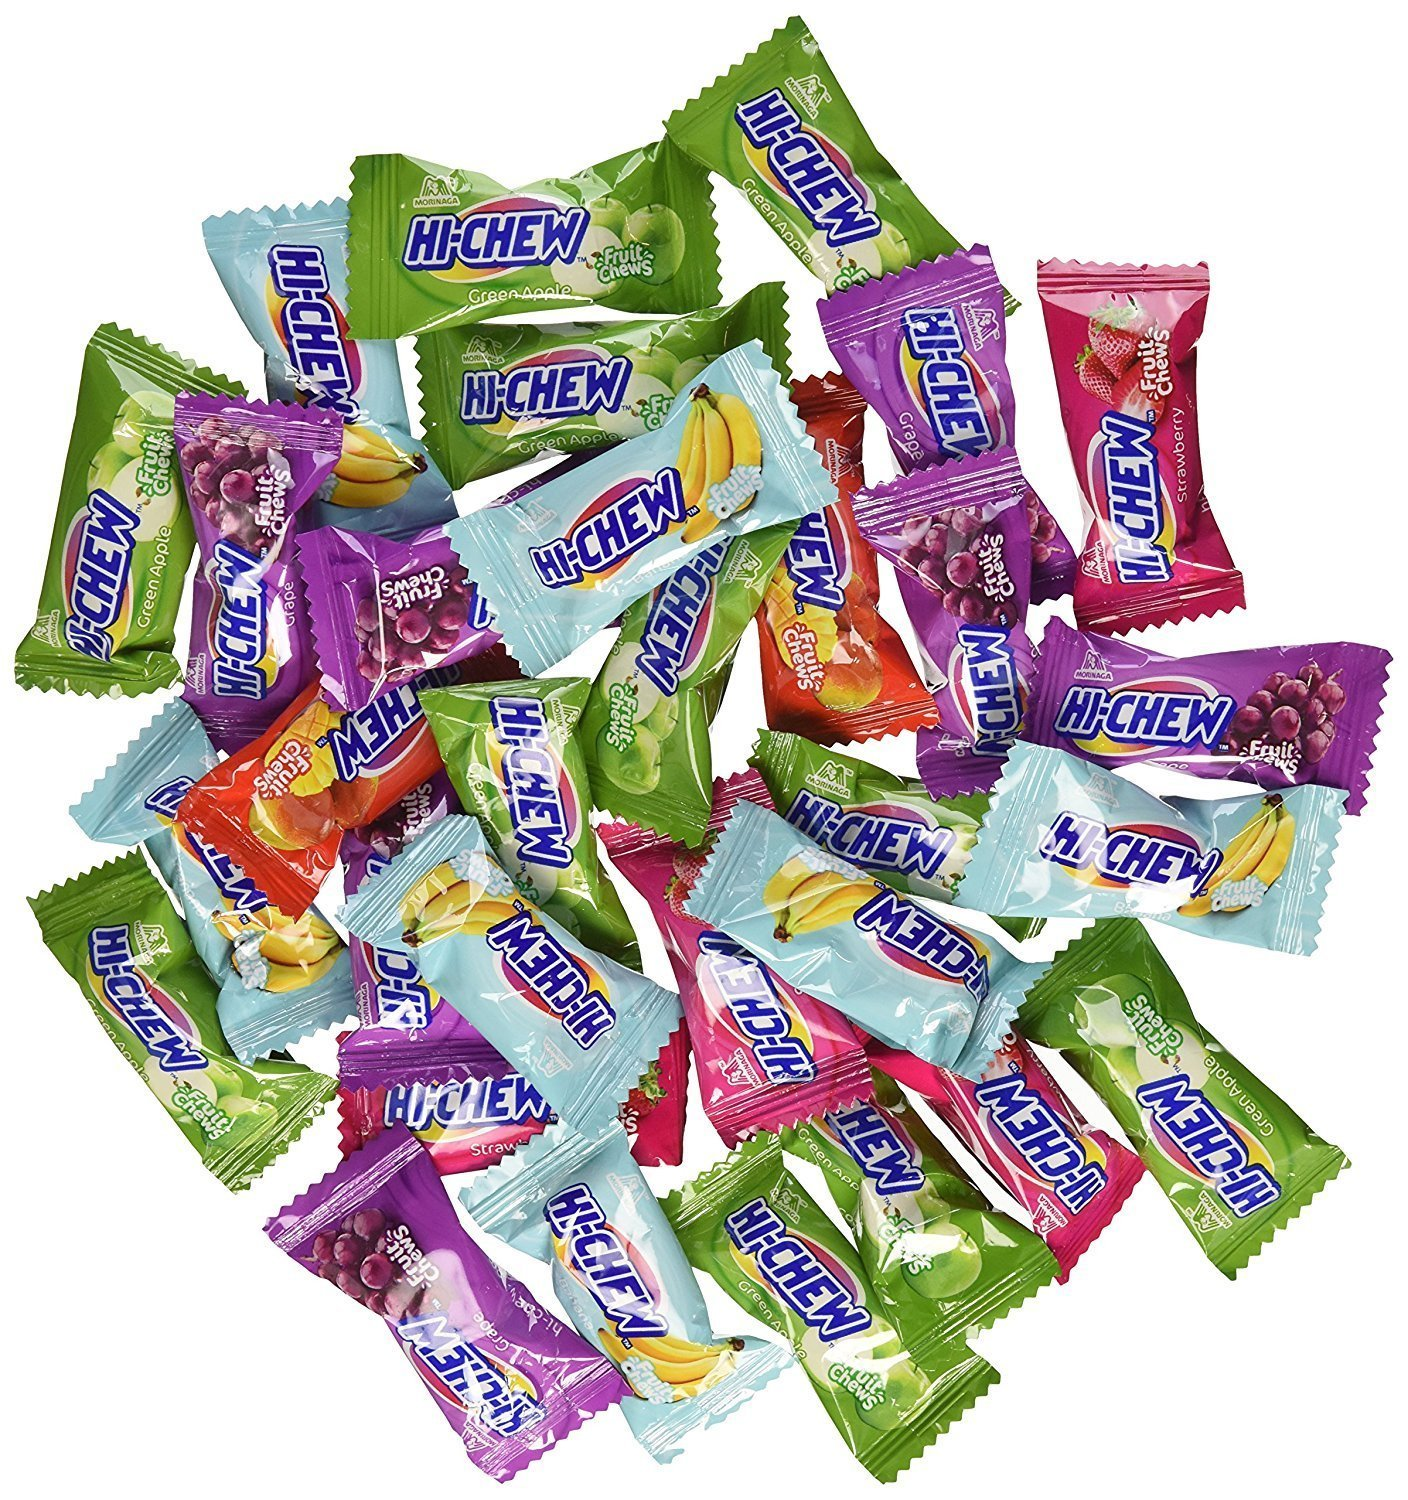 Hi-Chew 190 Assorted Flavored Individually Wrapped Fruit Chews - Mango, Grape, Melon, Strawberry, Banana & Green Apple